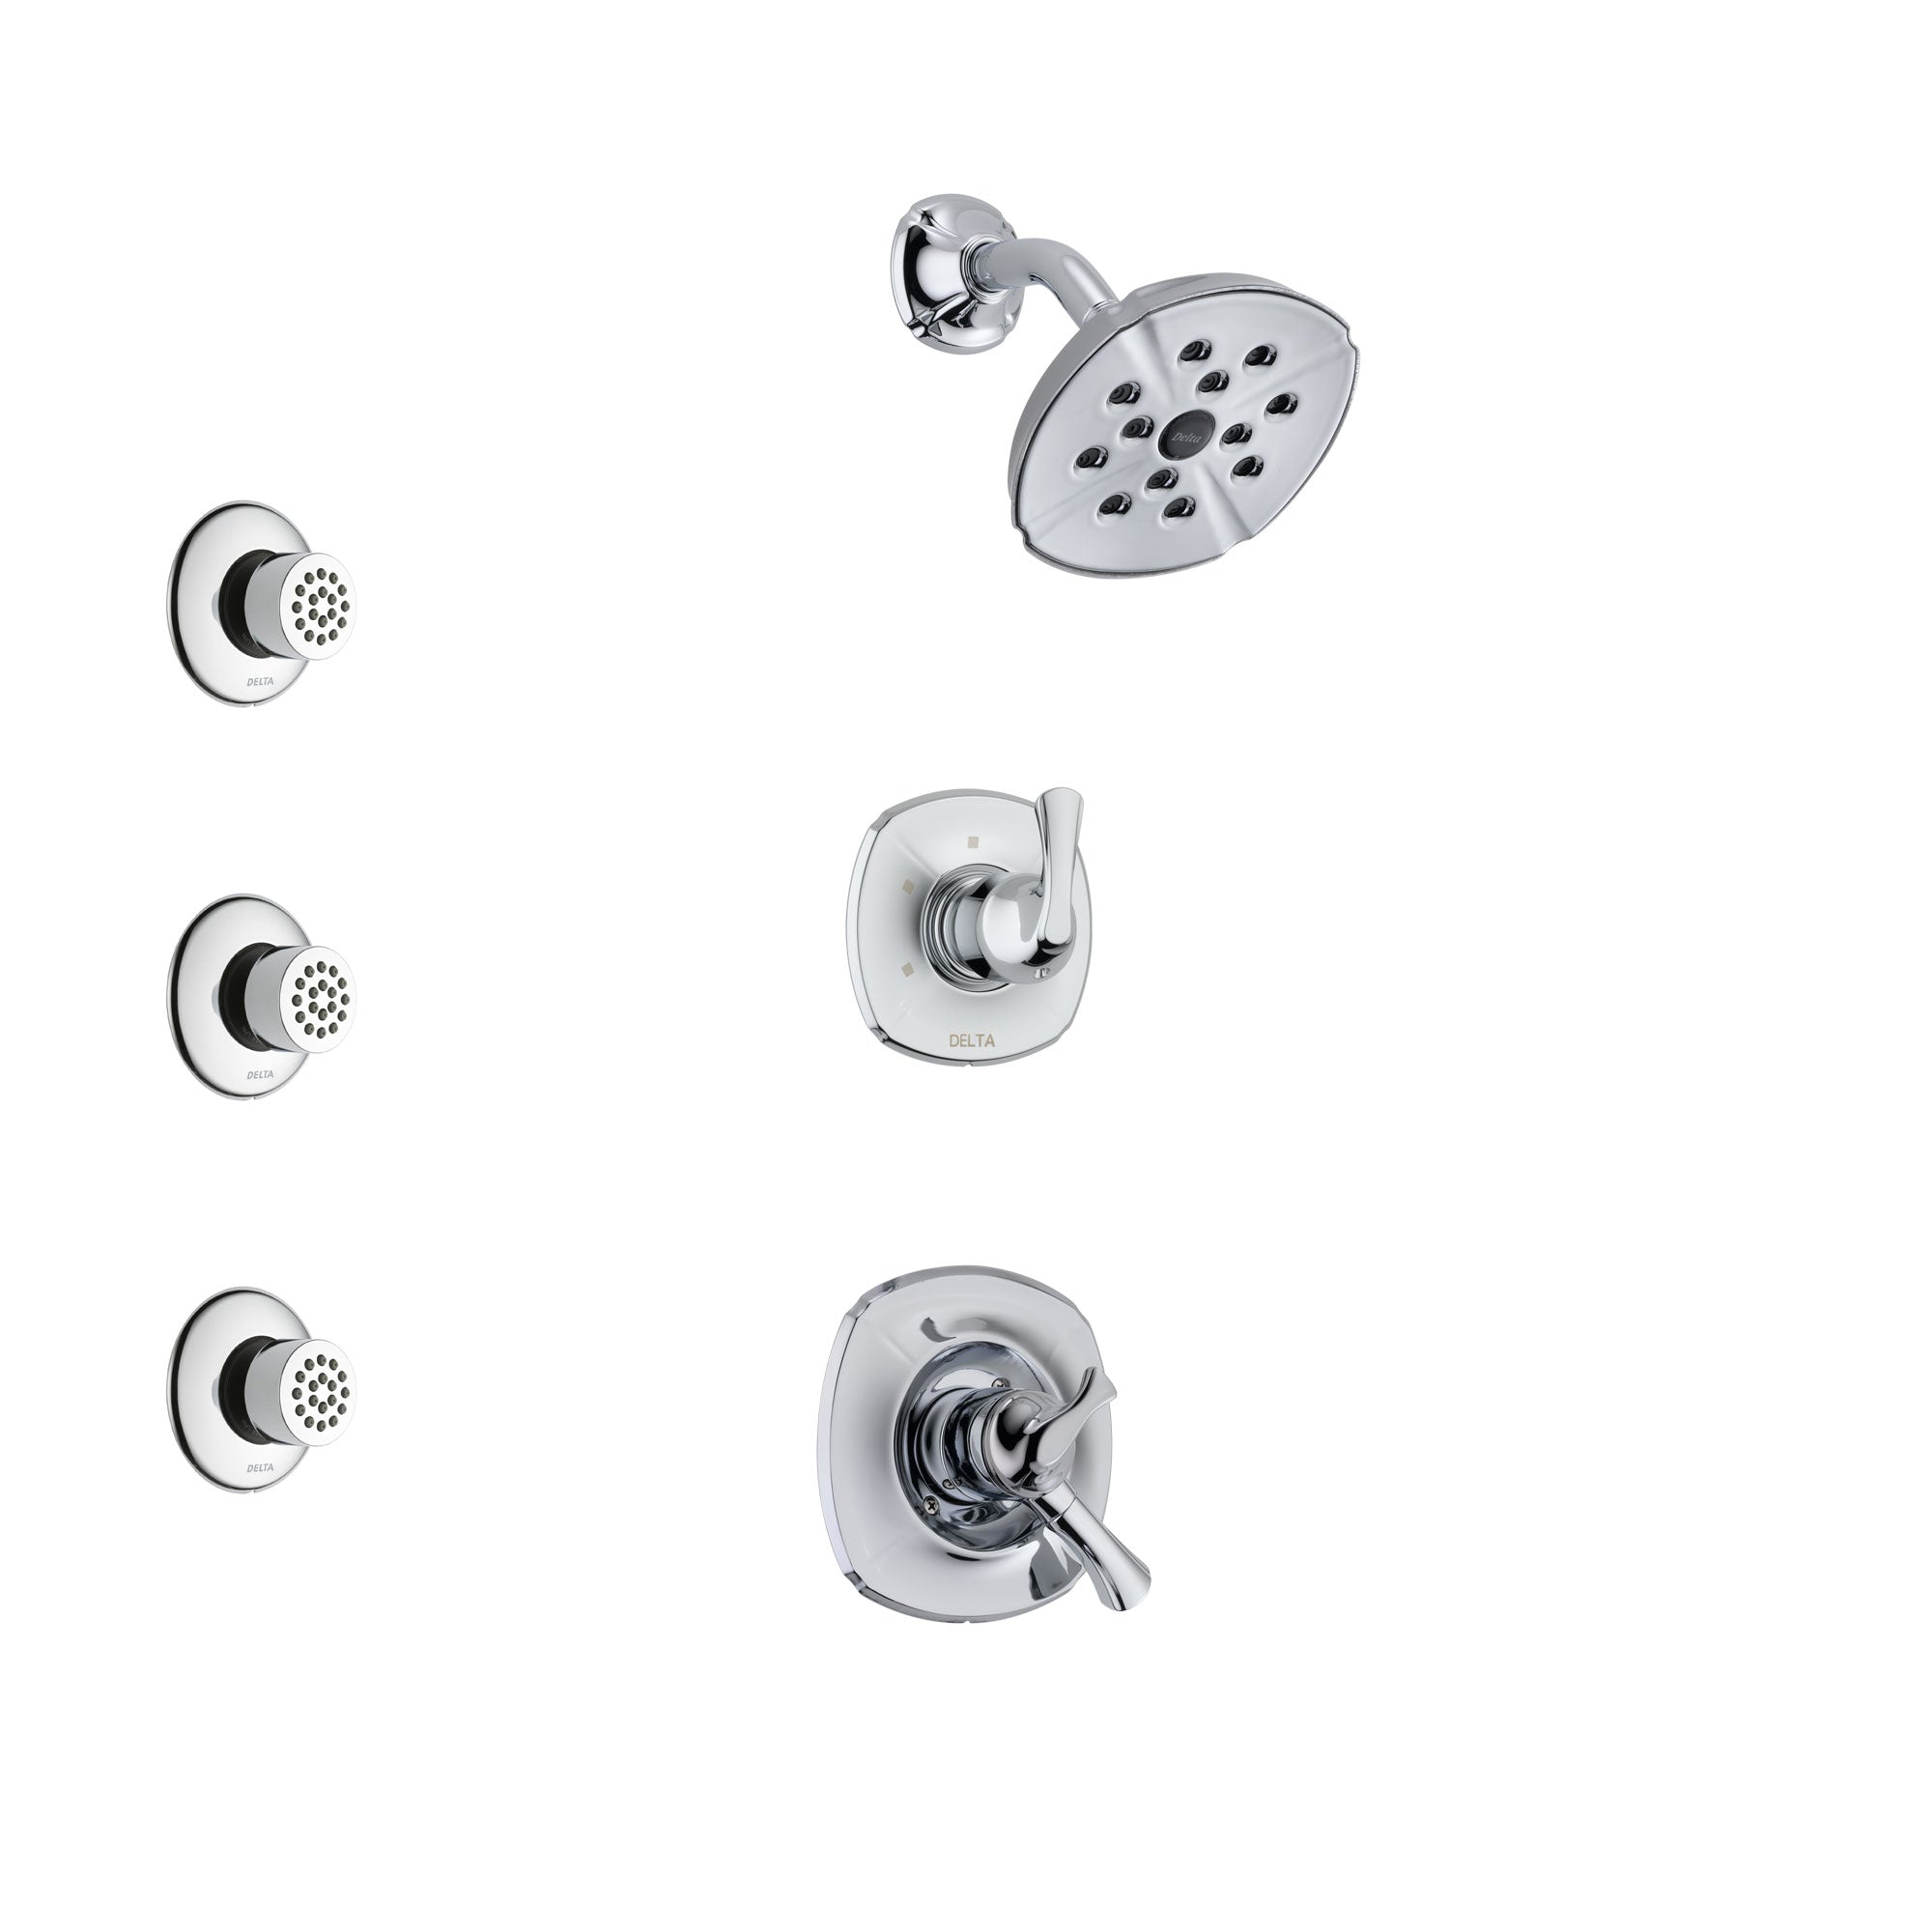 Delta Addison Chrome Finish Shower System with Dual Control Handle, 3-Setting Diverter, Showerhead, and 3 Body Sprays SS172921